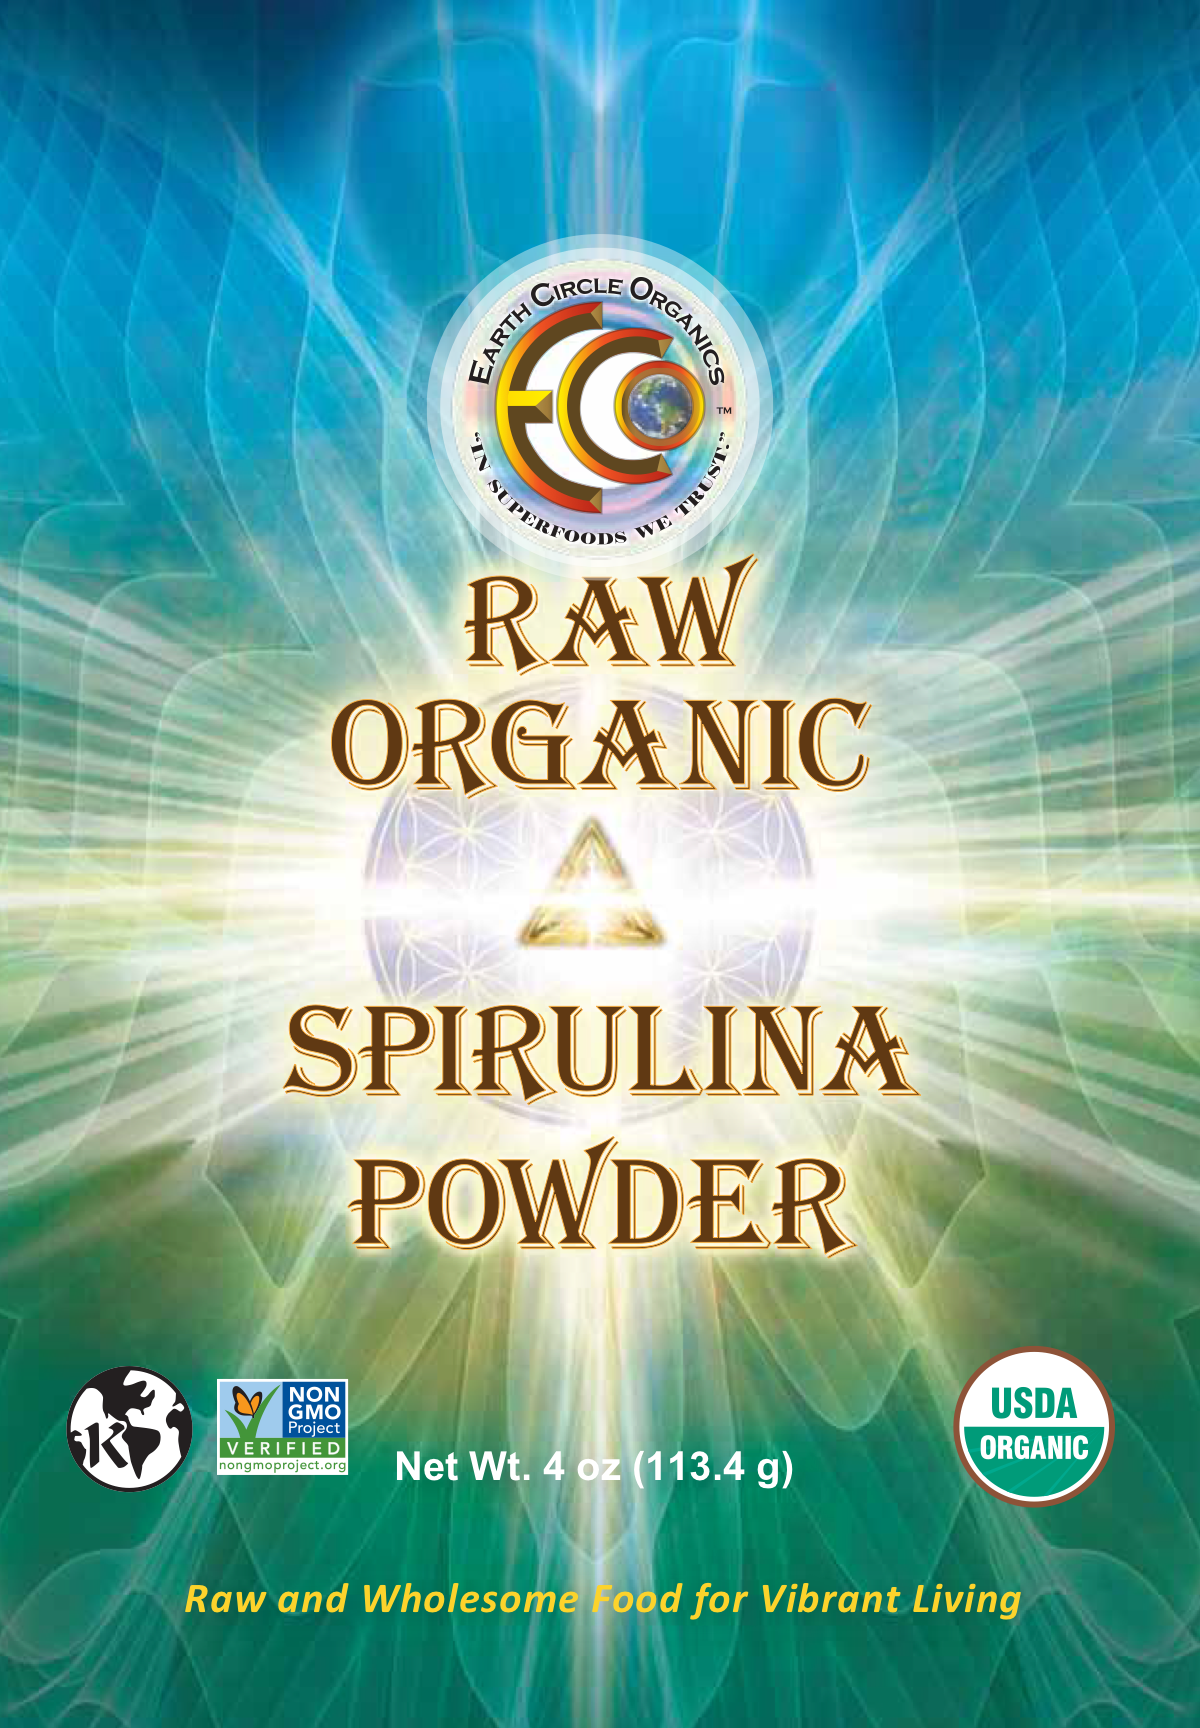 Earth Circle Organics Design